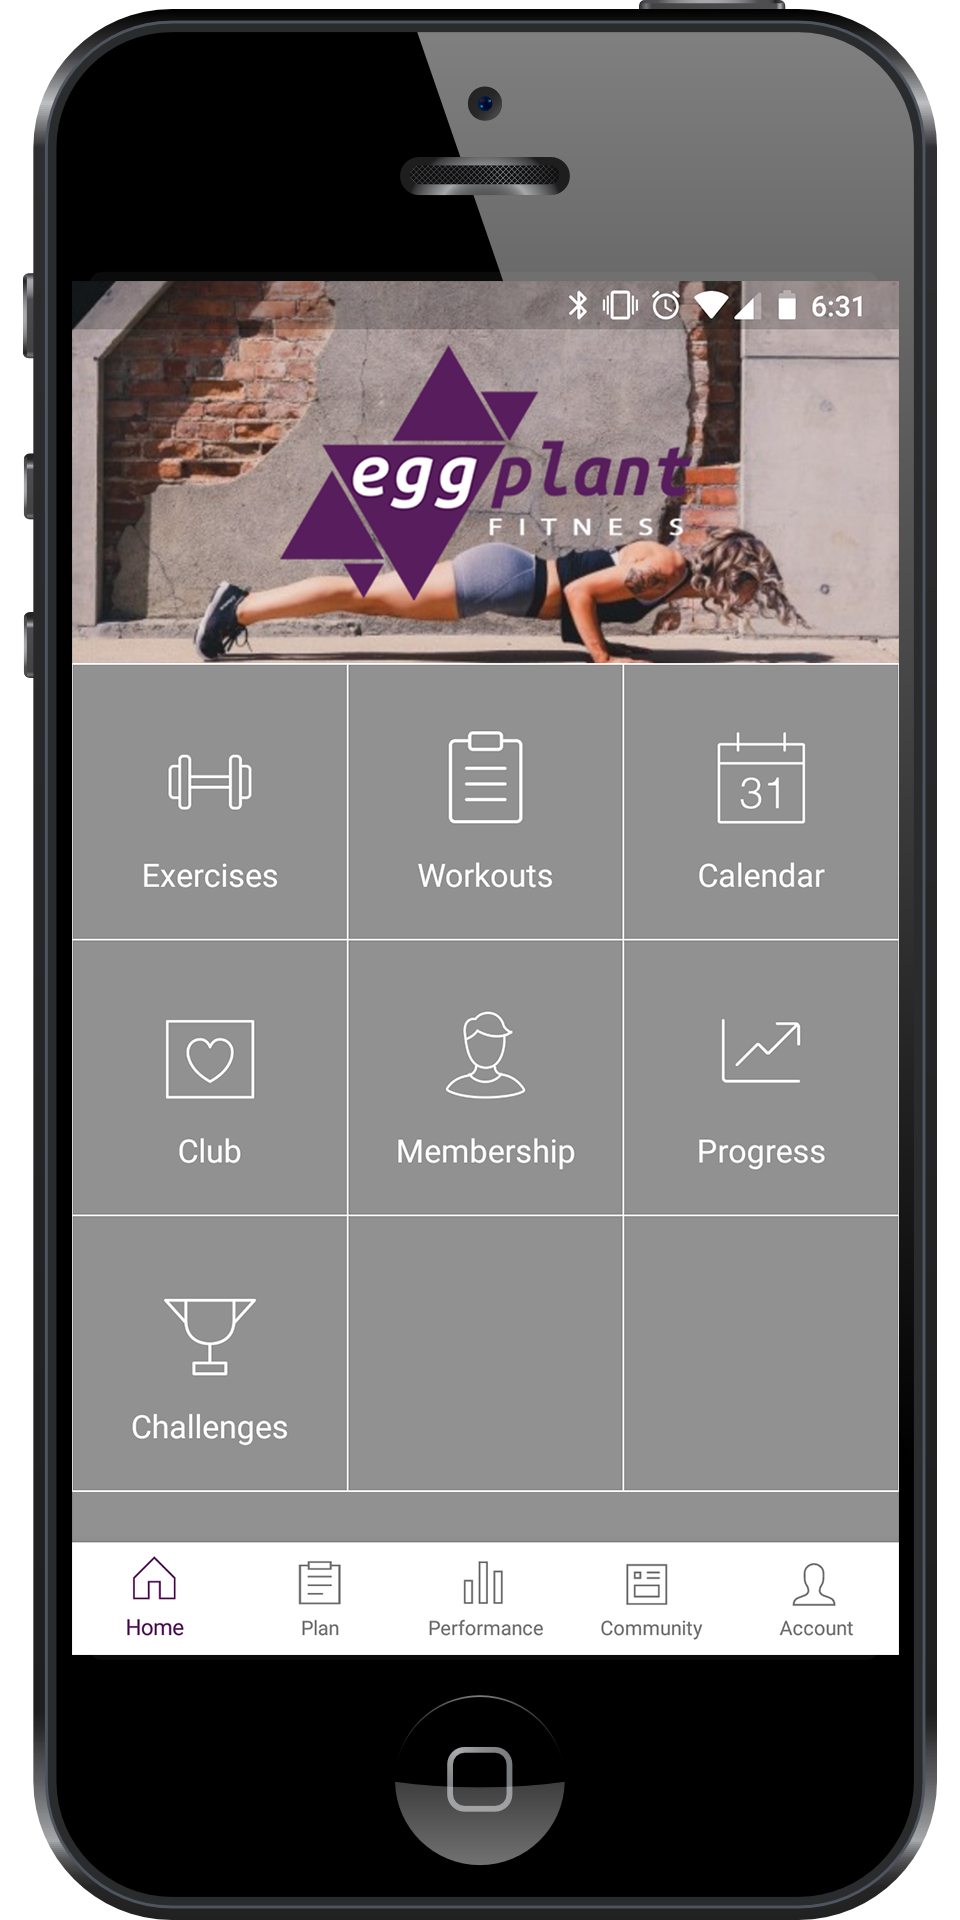 Imagine This - You wake up and check your personalized plan in the Eggplant Fitness app.Your coach has provided a sample meal plan, and you can track your food all day in the app to make sure you get the right amount of proteins, carbs, and fats.When you're ready to hit the gym, your coach has outlined the day's workout, complete with a demonstration animation for each exercise to help you get your form right.You find yourself needing a little reassurance or motivation, so you shoot your coach a message and get a quick response that keeps you on track to achieve your goals.You go to bed feeling like you can achieve anything!